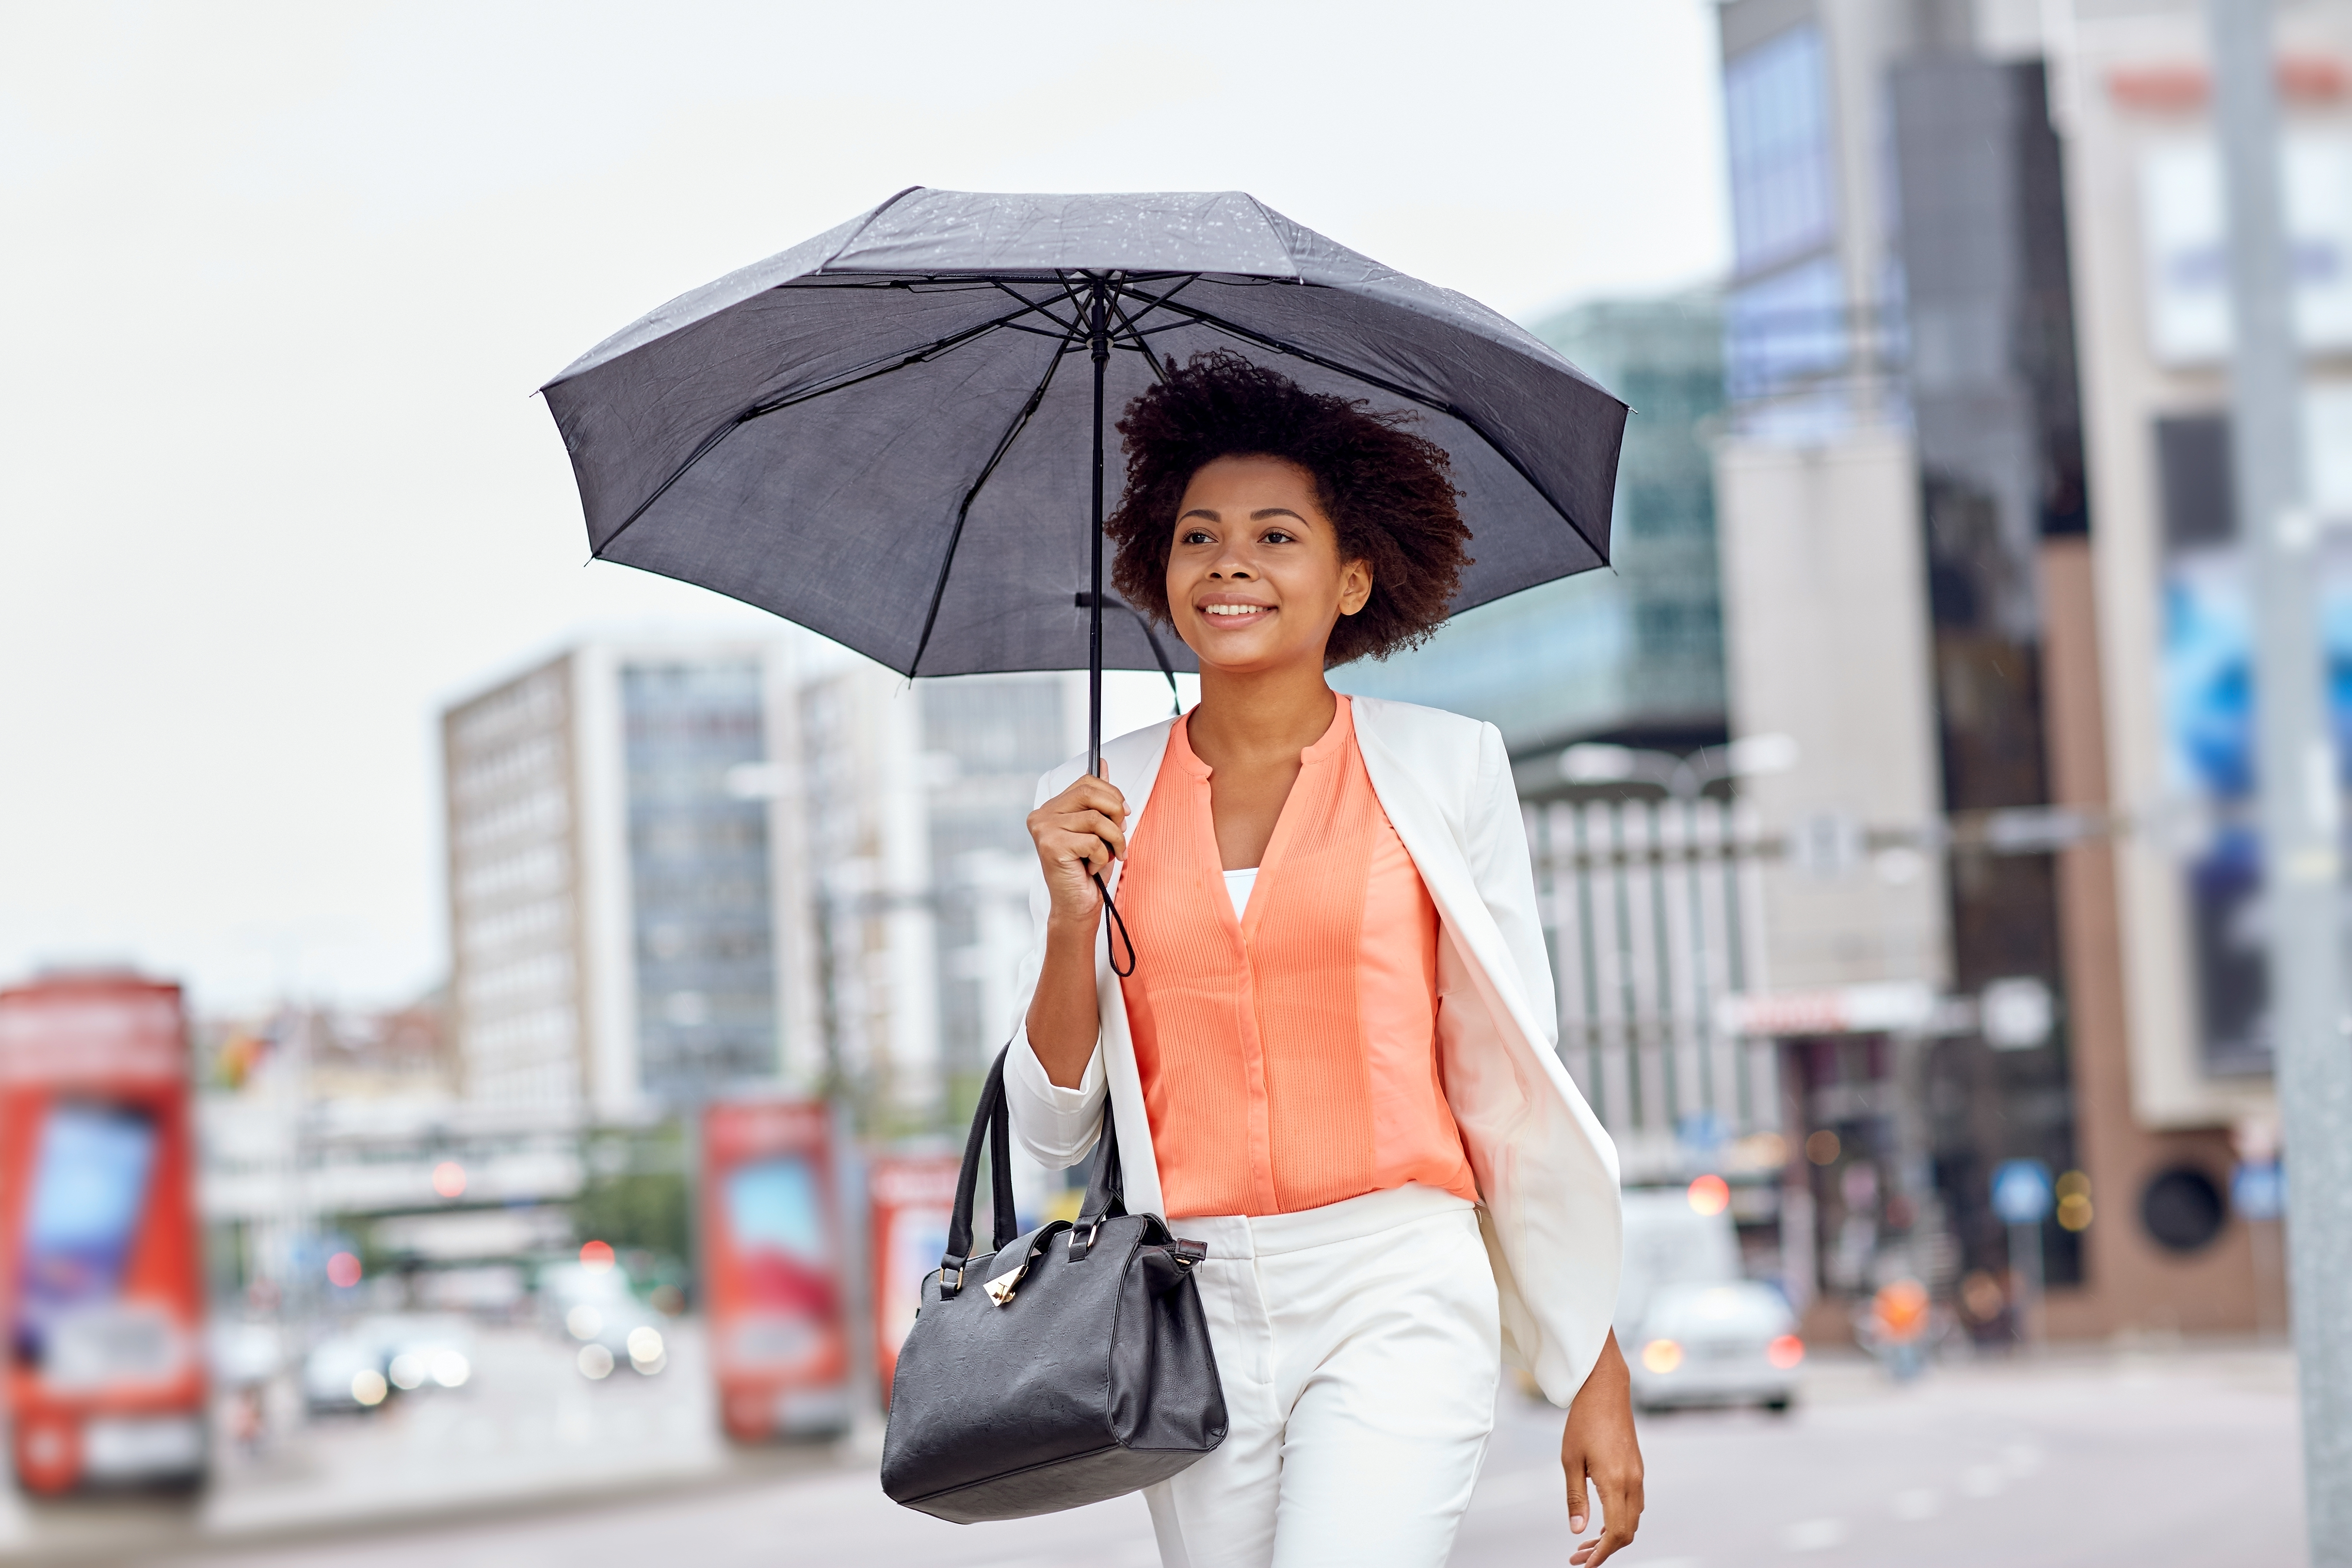 Priority Health Personal Wellness Active Rainy Day Walk With Umbrella